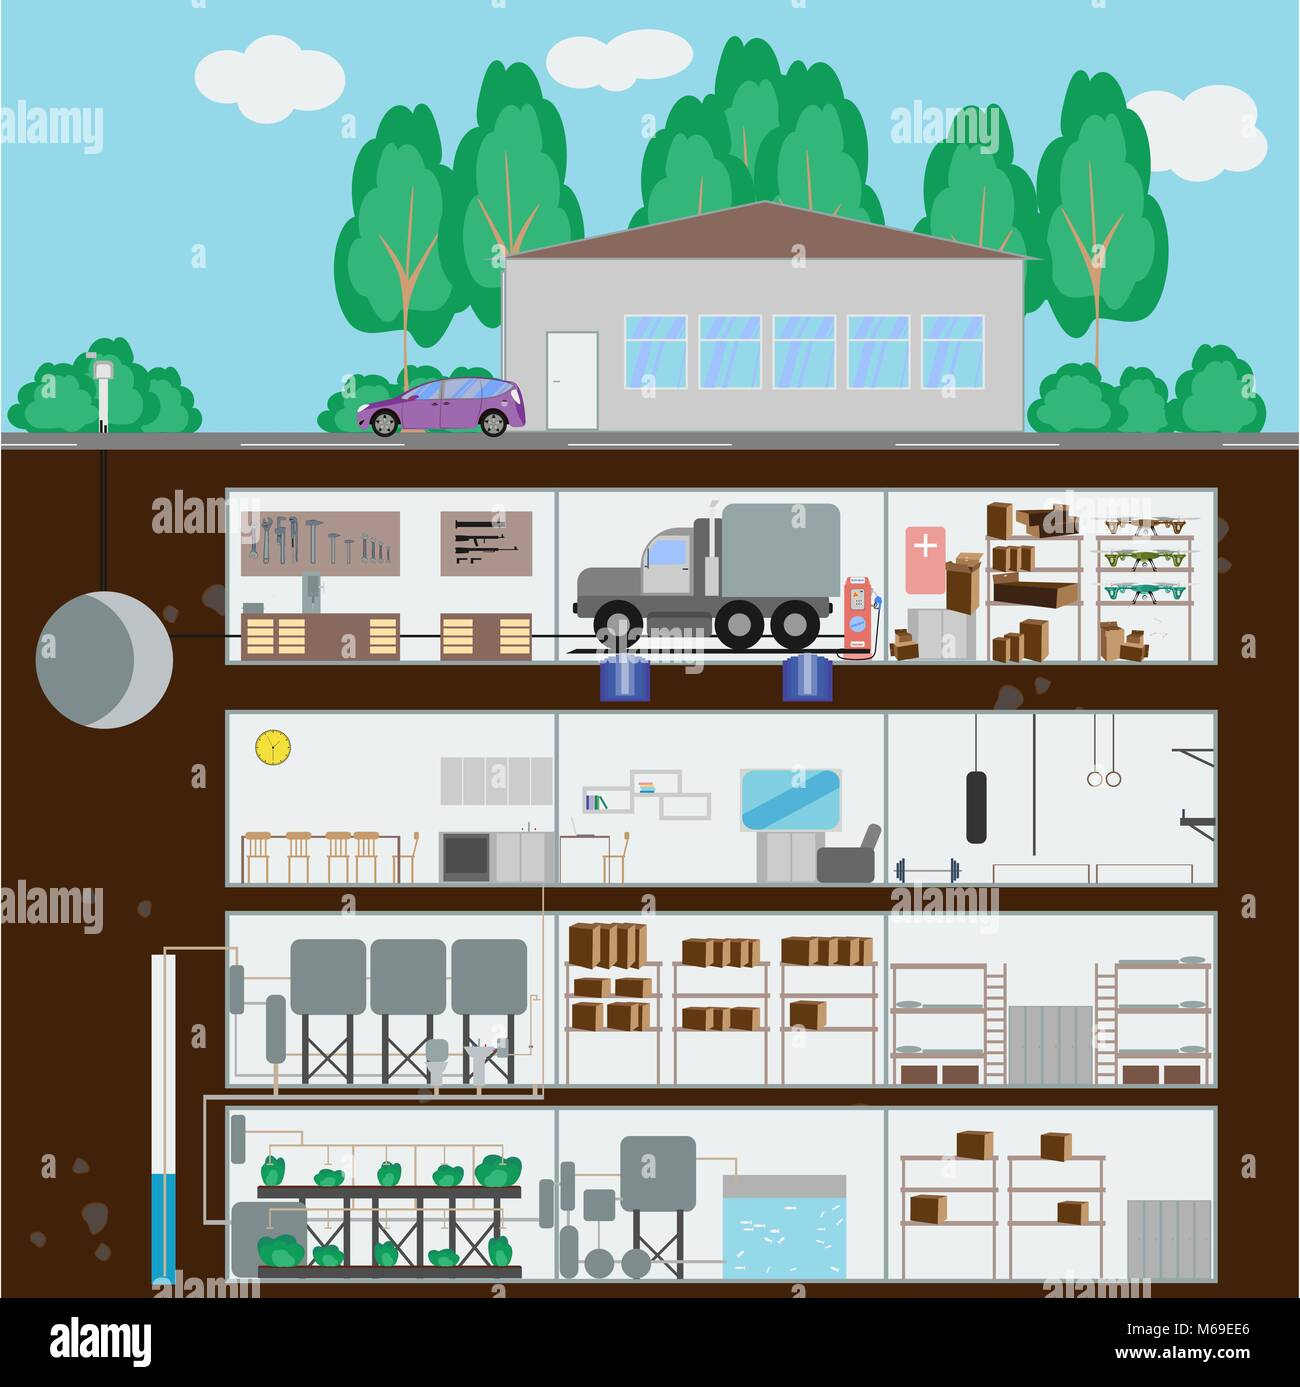 Underground bunker. Many parts of autonomous survival. Flat style. Vector illustration Stock Vector